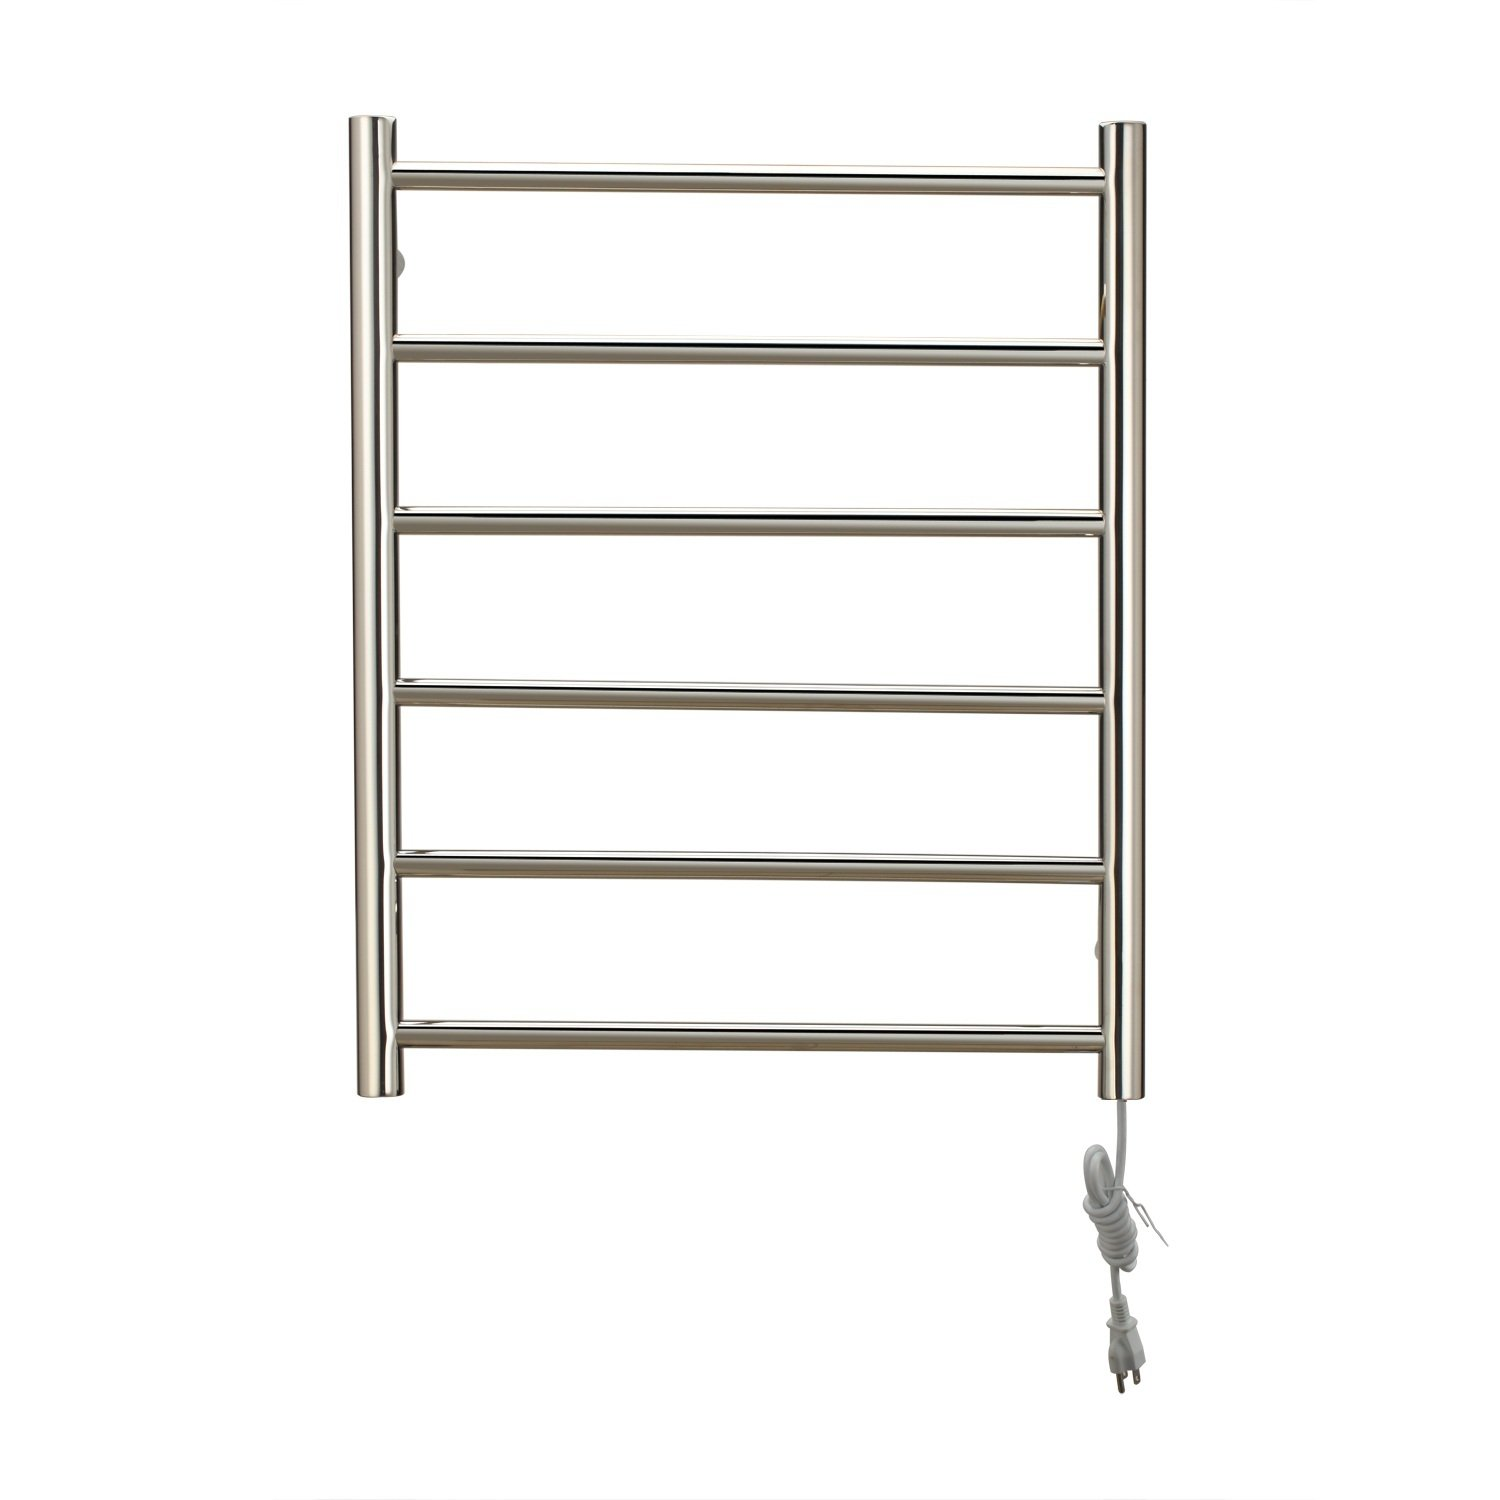 Towel Warmer Stainless Steel Wall Mounted 700 x 540 x 55mm (27.5 x 21.2 x 2.16'') Stainless Steel Contemporary 110-120V by Luxrmoon